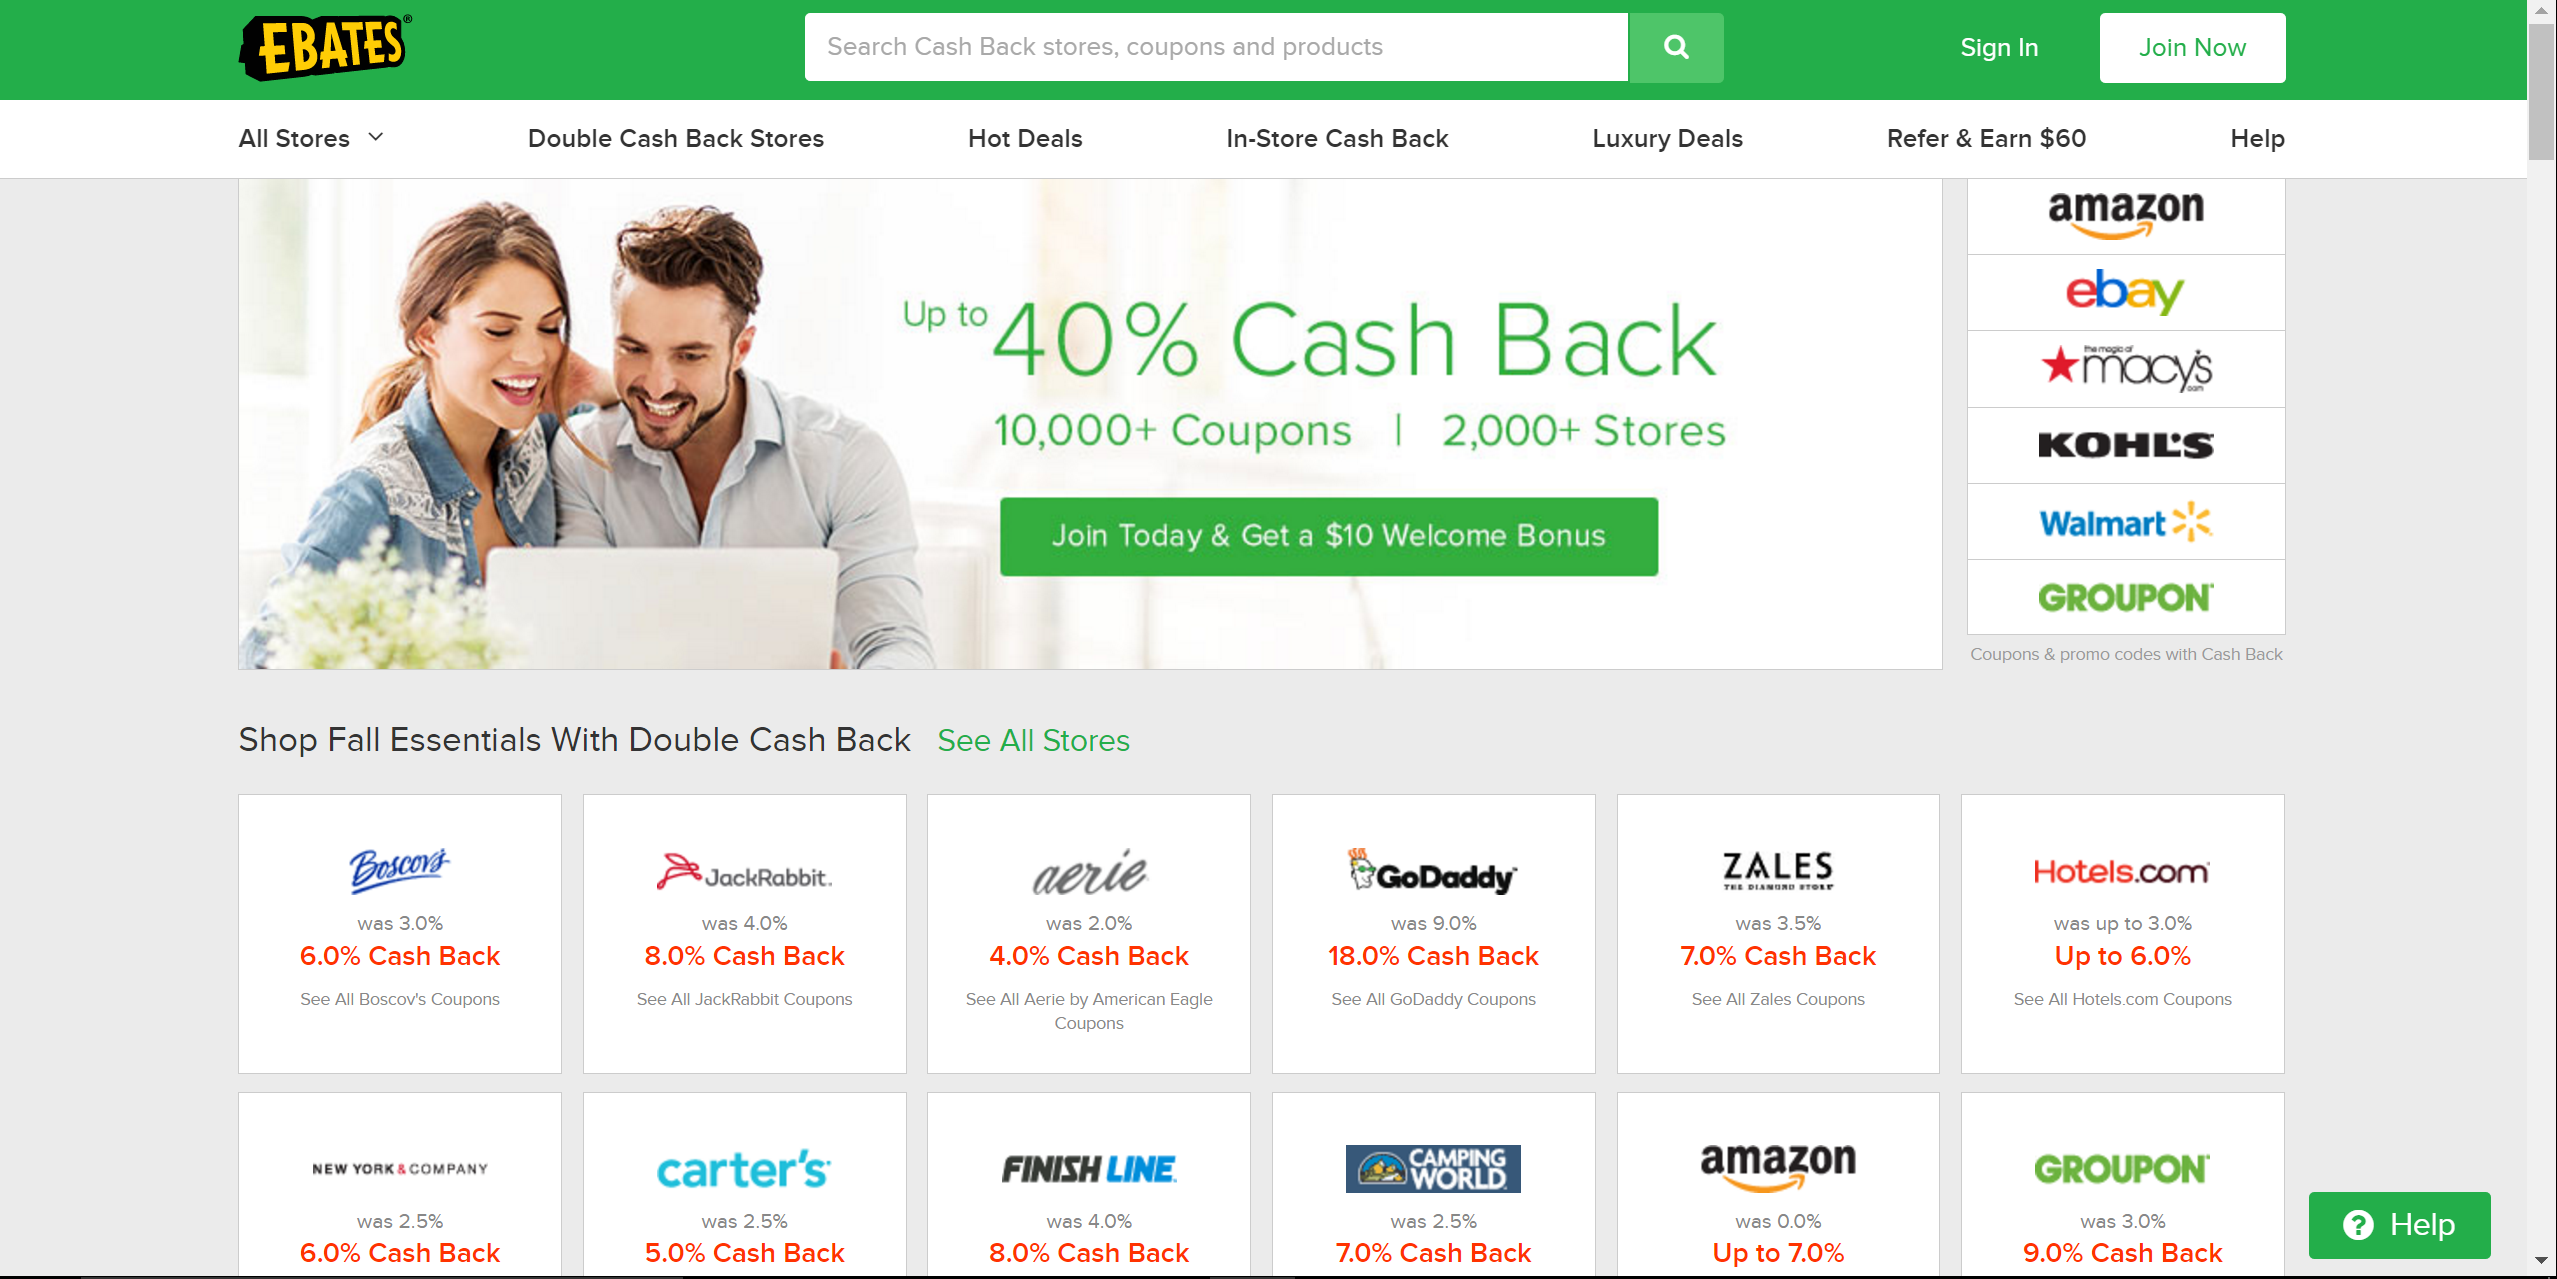 Ebates offers cash back for many sites including Nordstrom, Amazon